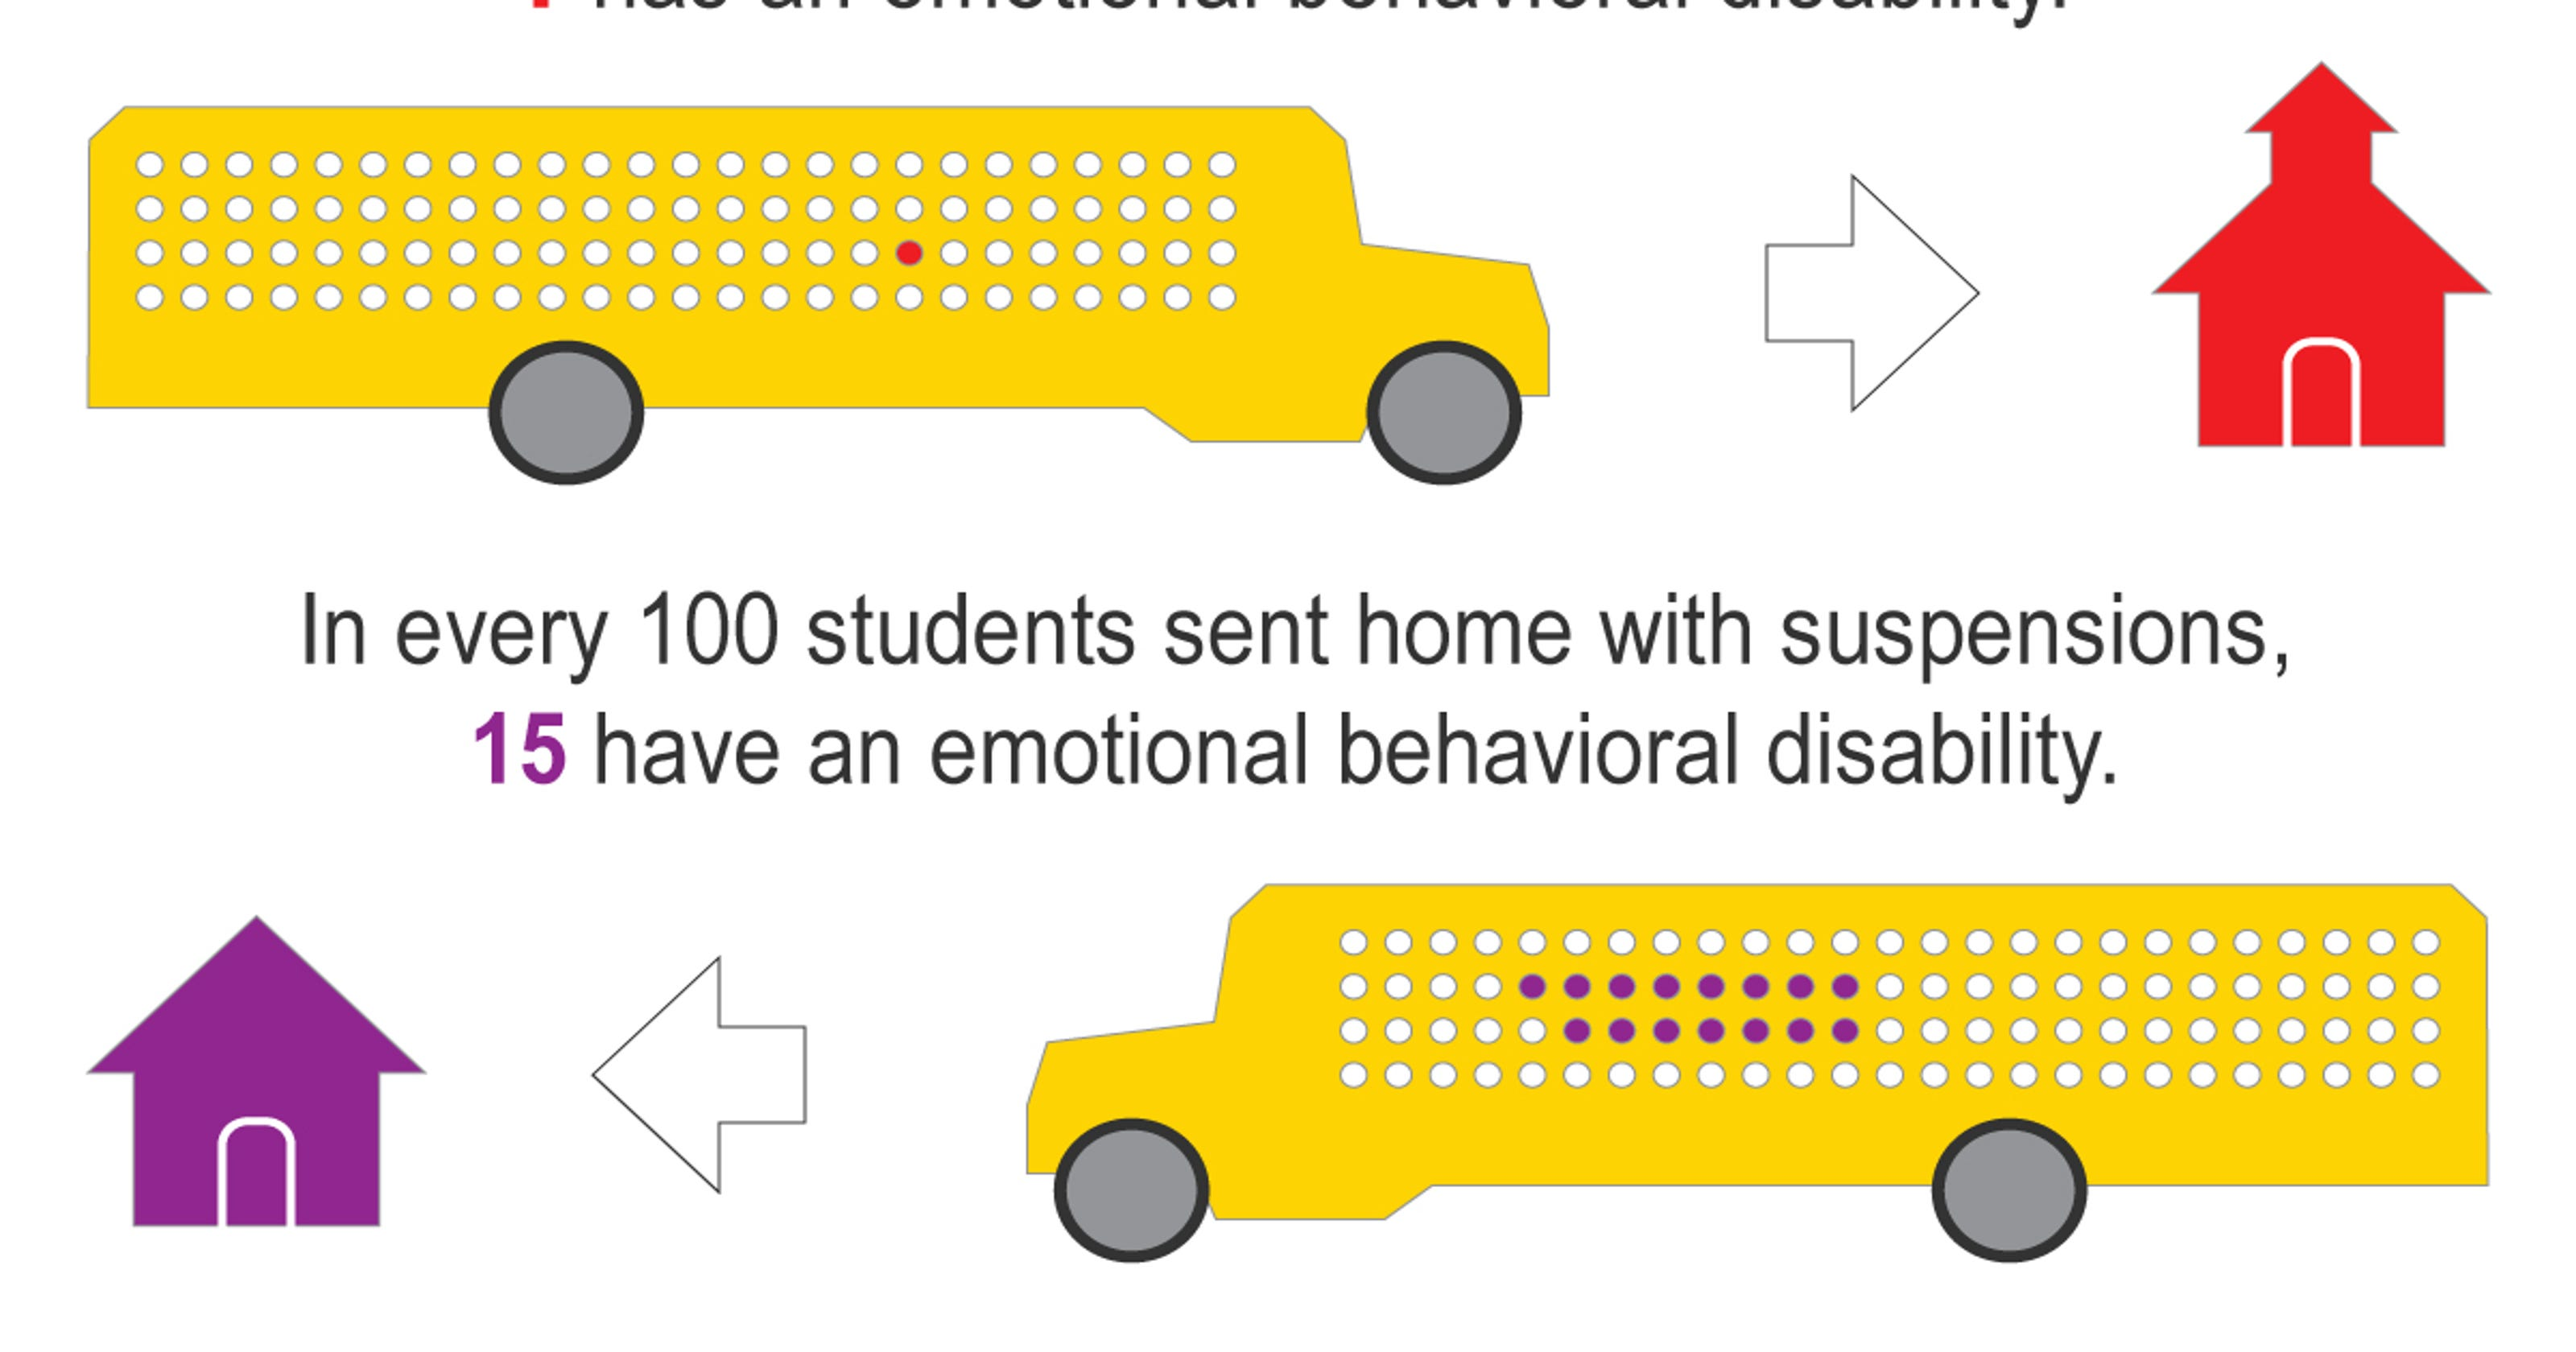 Students With Disabilities Suspended >> Kids With Disabilities Suspended More Often